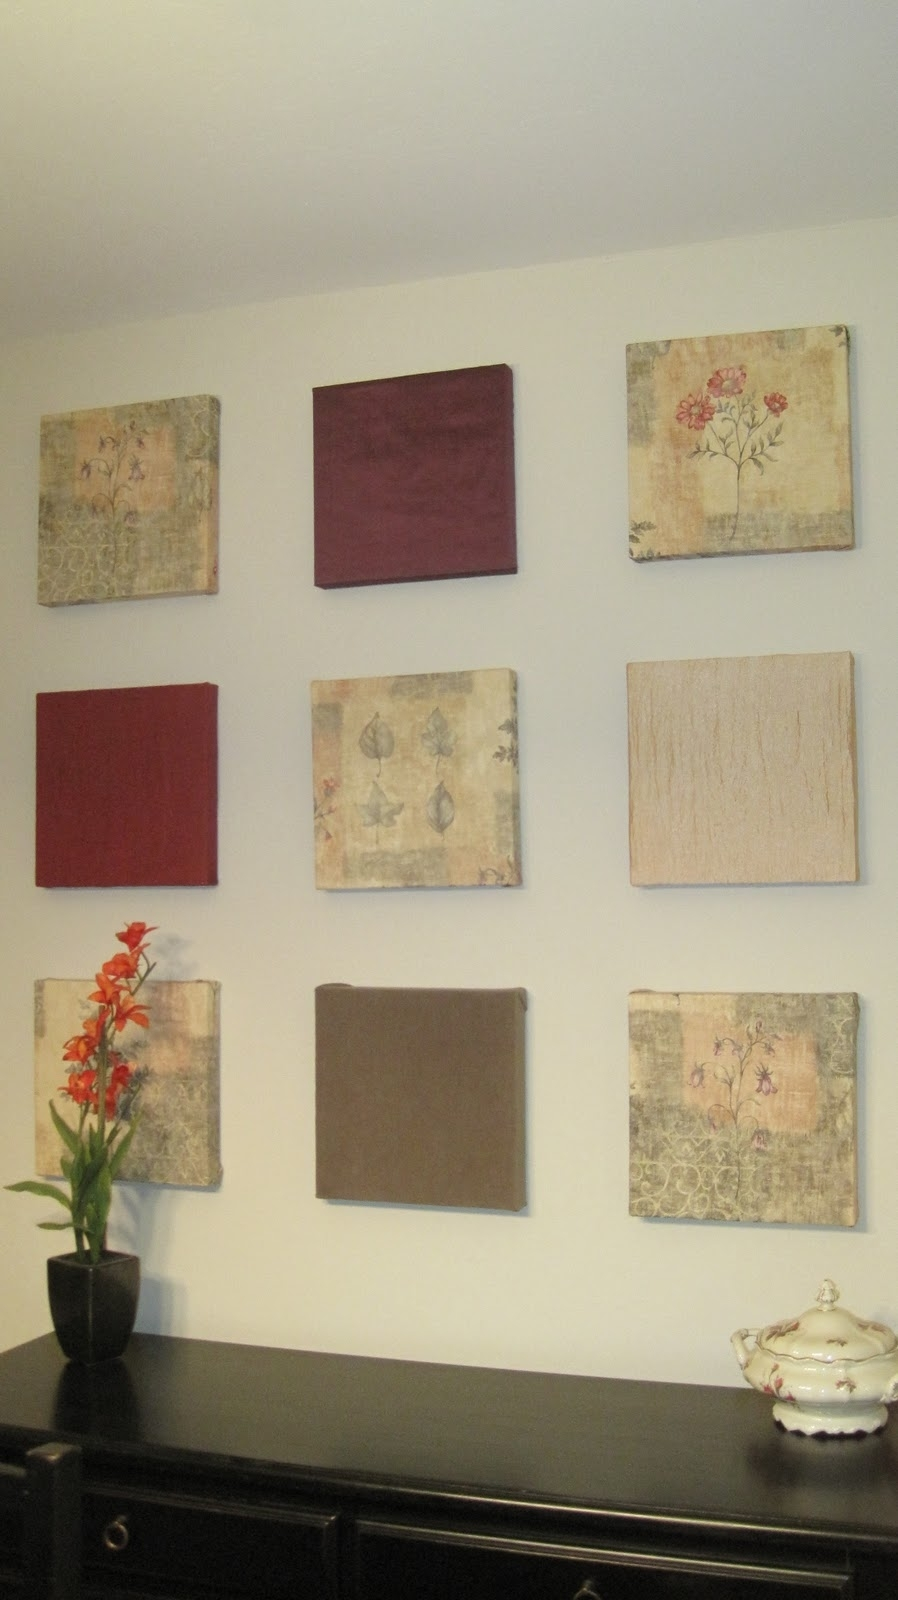 Whimsy Space: Wall Art Within Most Up To Date Fabric Square Wall Art (Gallery 3 of 15)